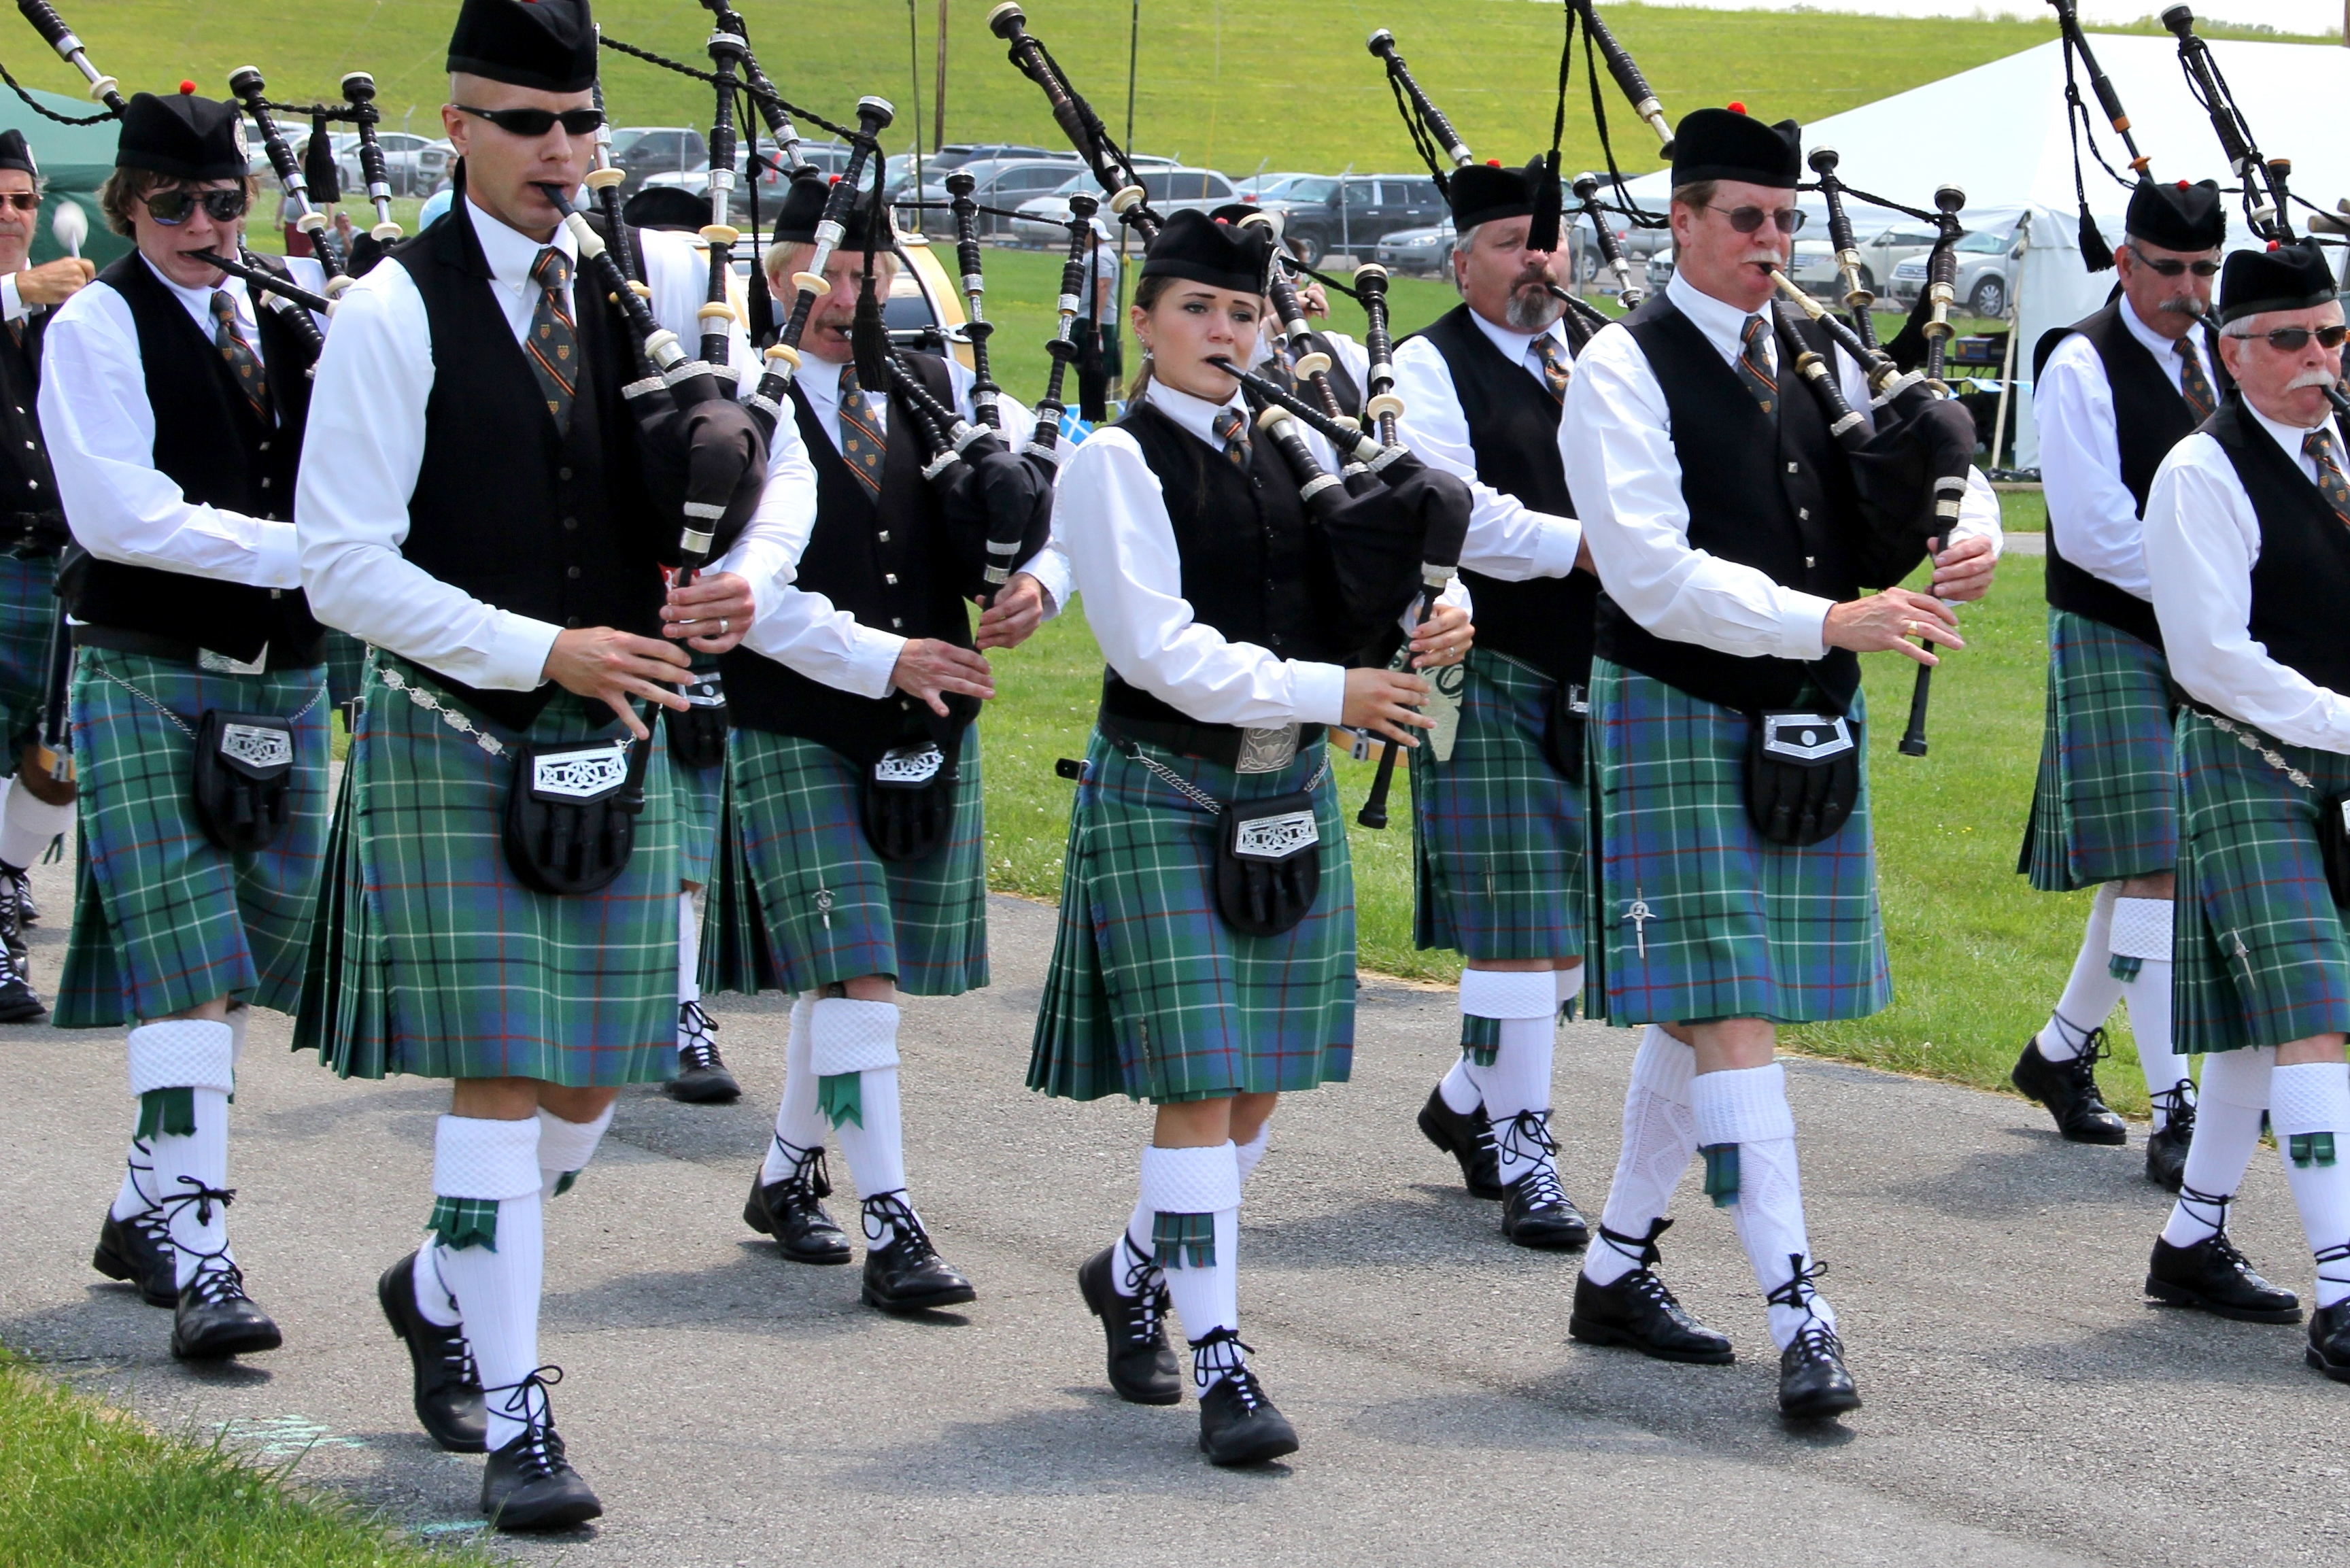 Pipe Bands competition